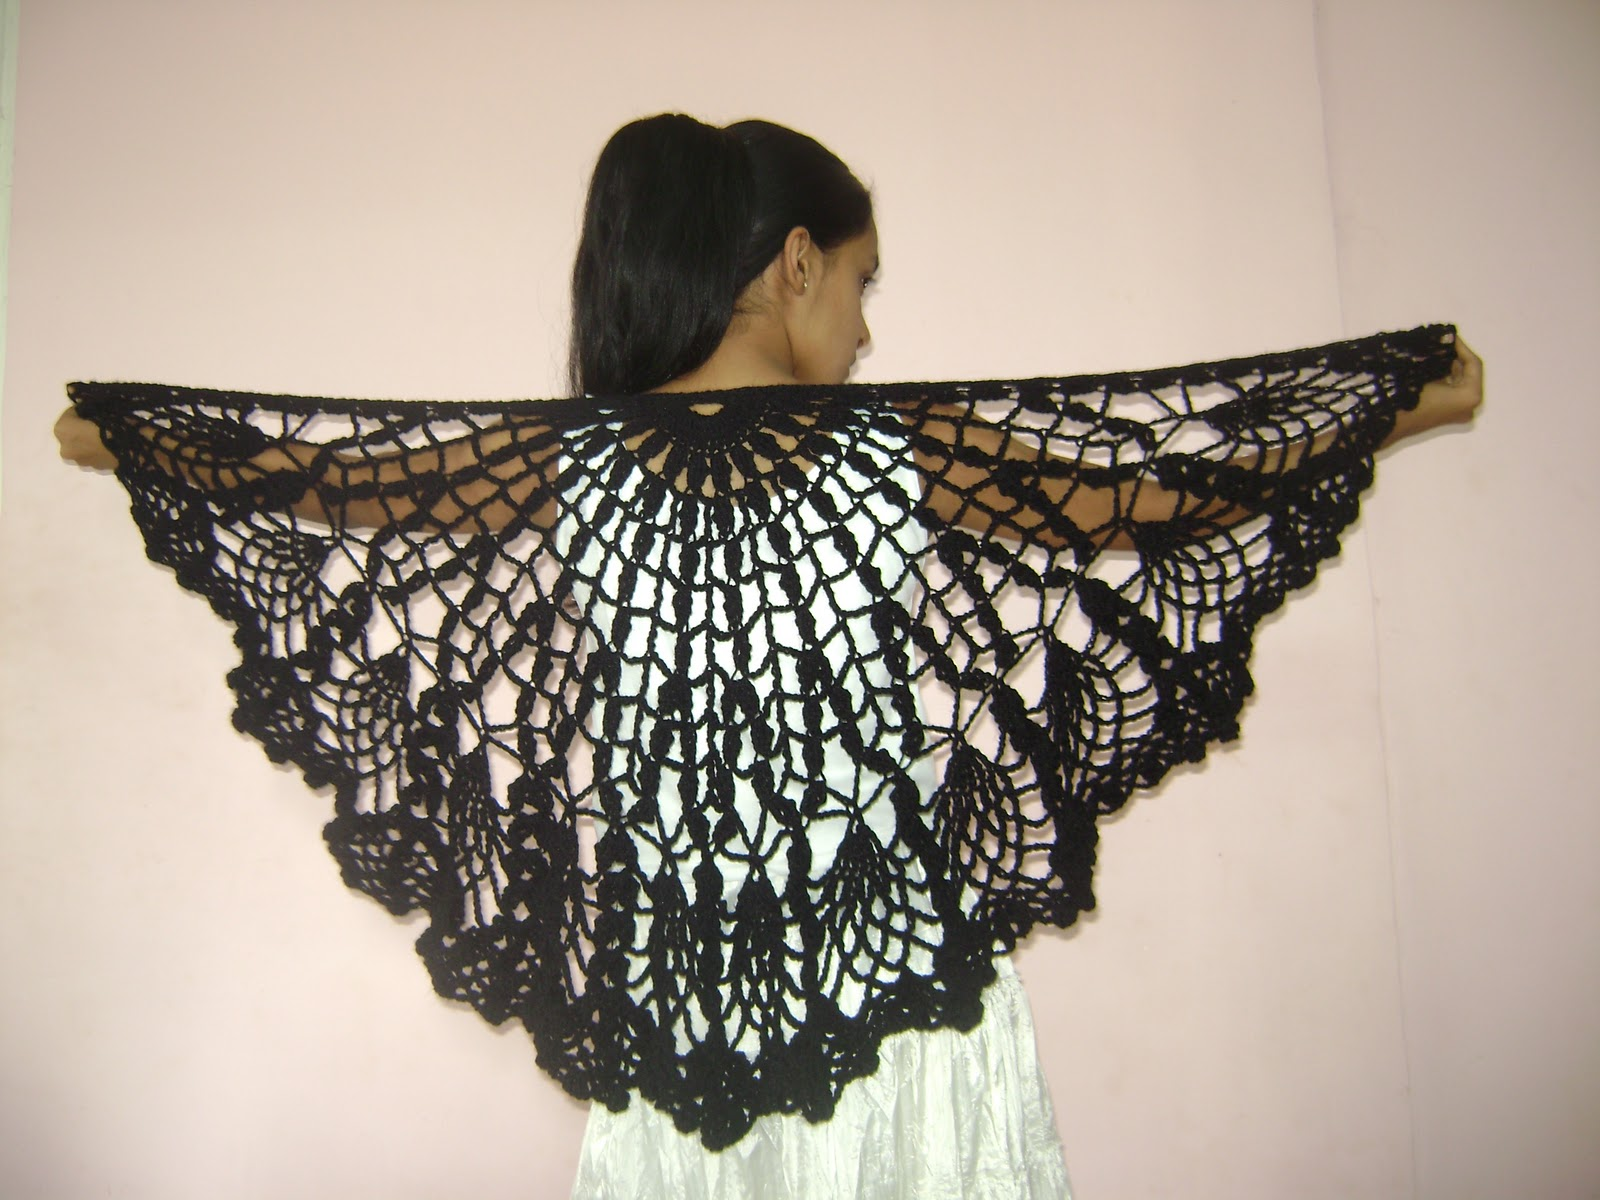 Crochet Beginner Shawl Pattern : Free Crochet Pineapple Shawl Pattern images